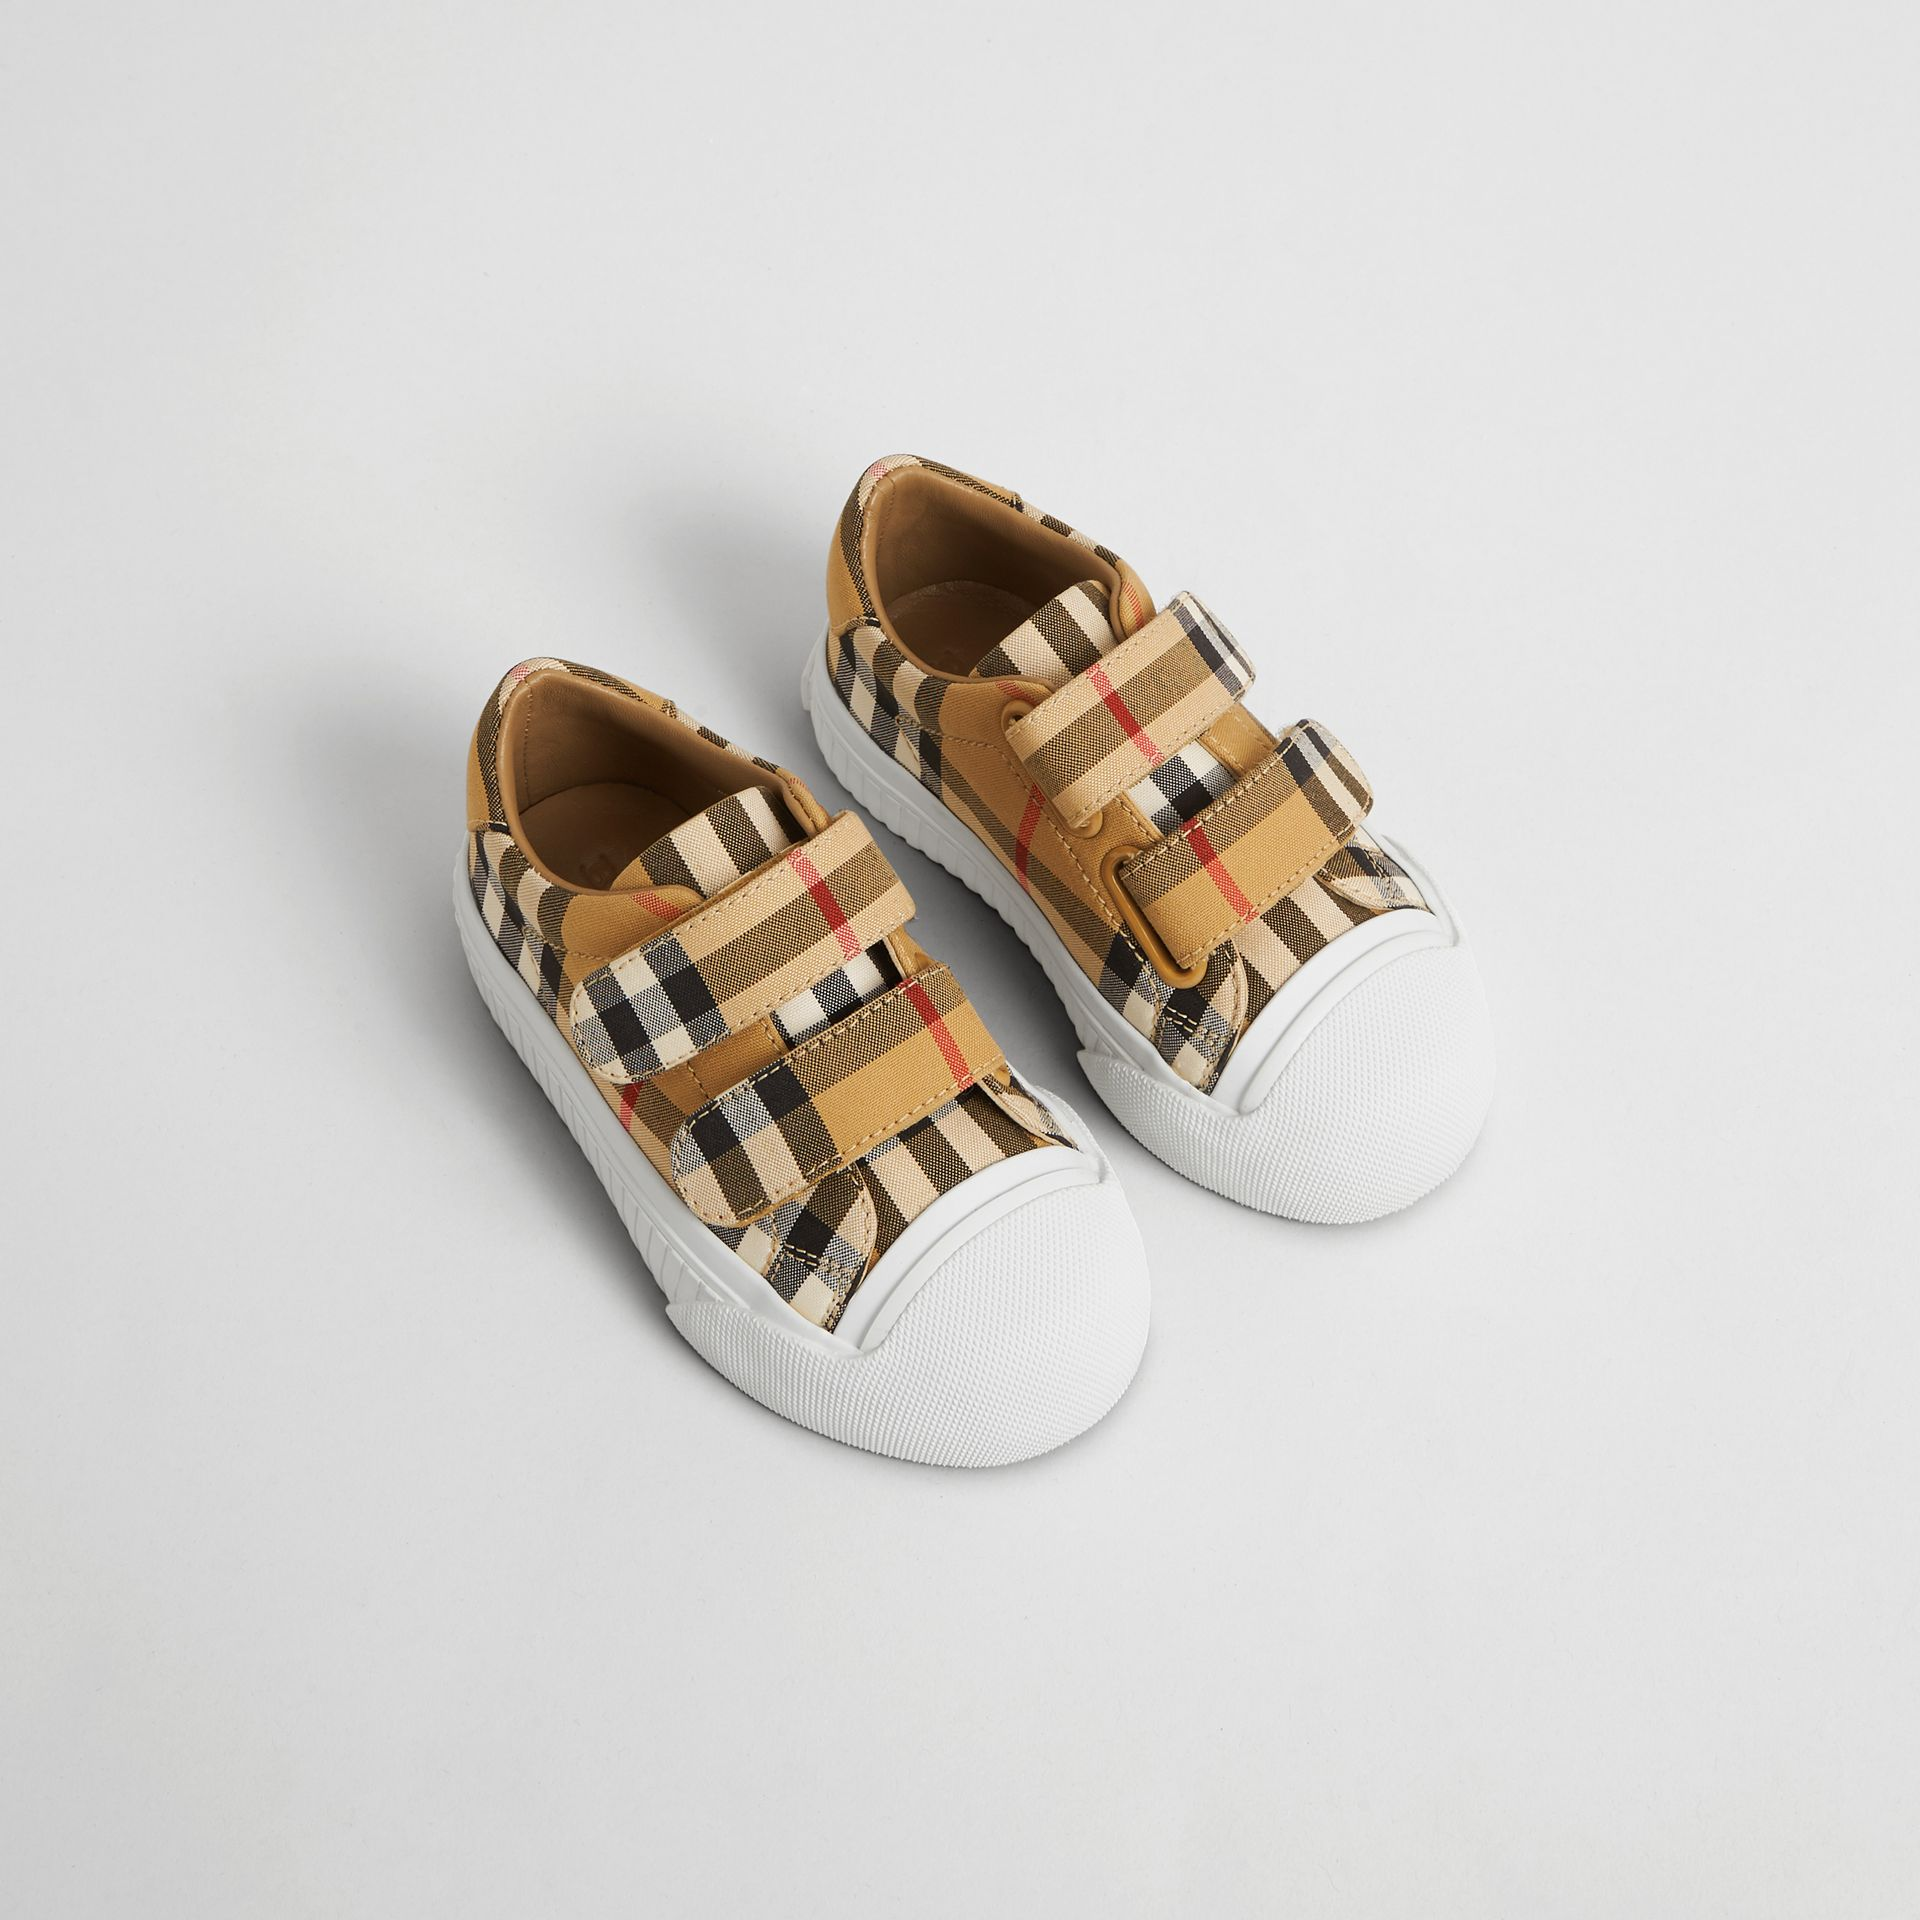 Sneakers en cuir à motif Vintage check (Blanc Optique/noir) - Enfant | Burberry - photo de la galerie 0